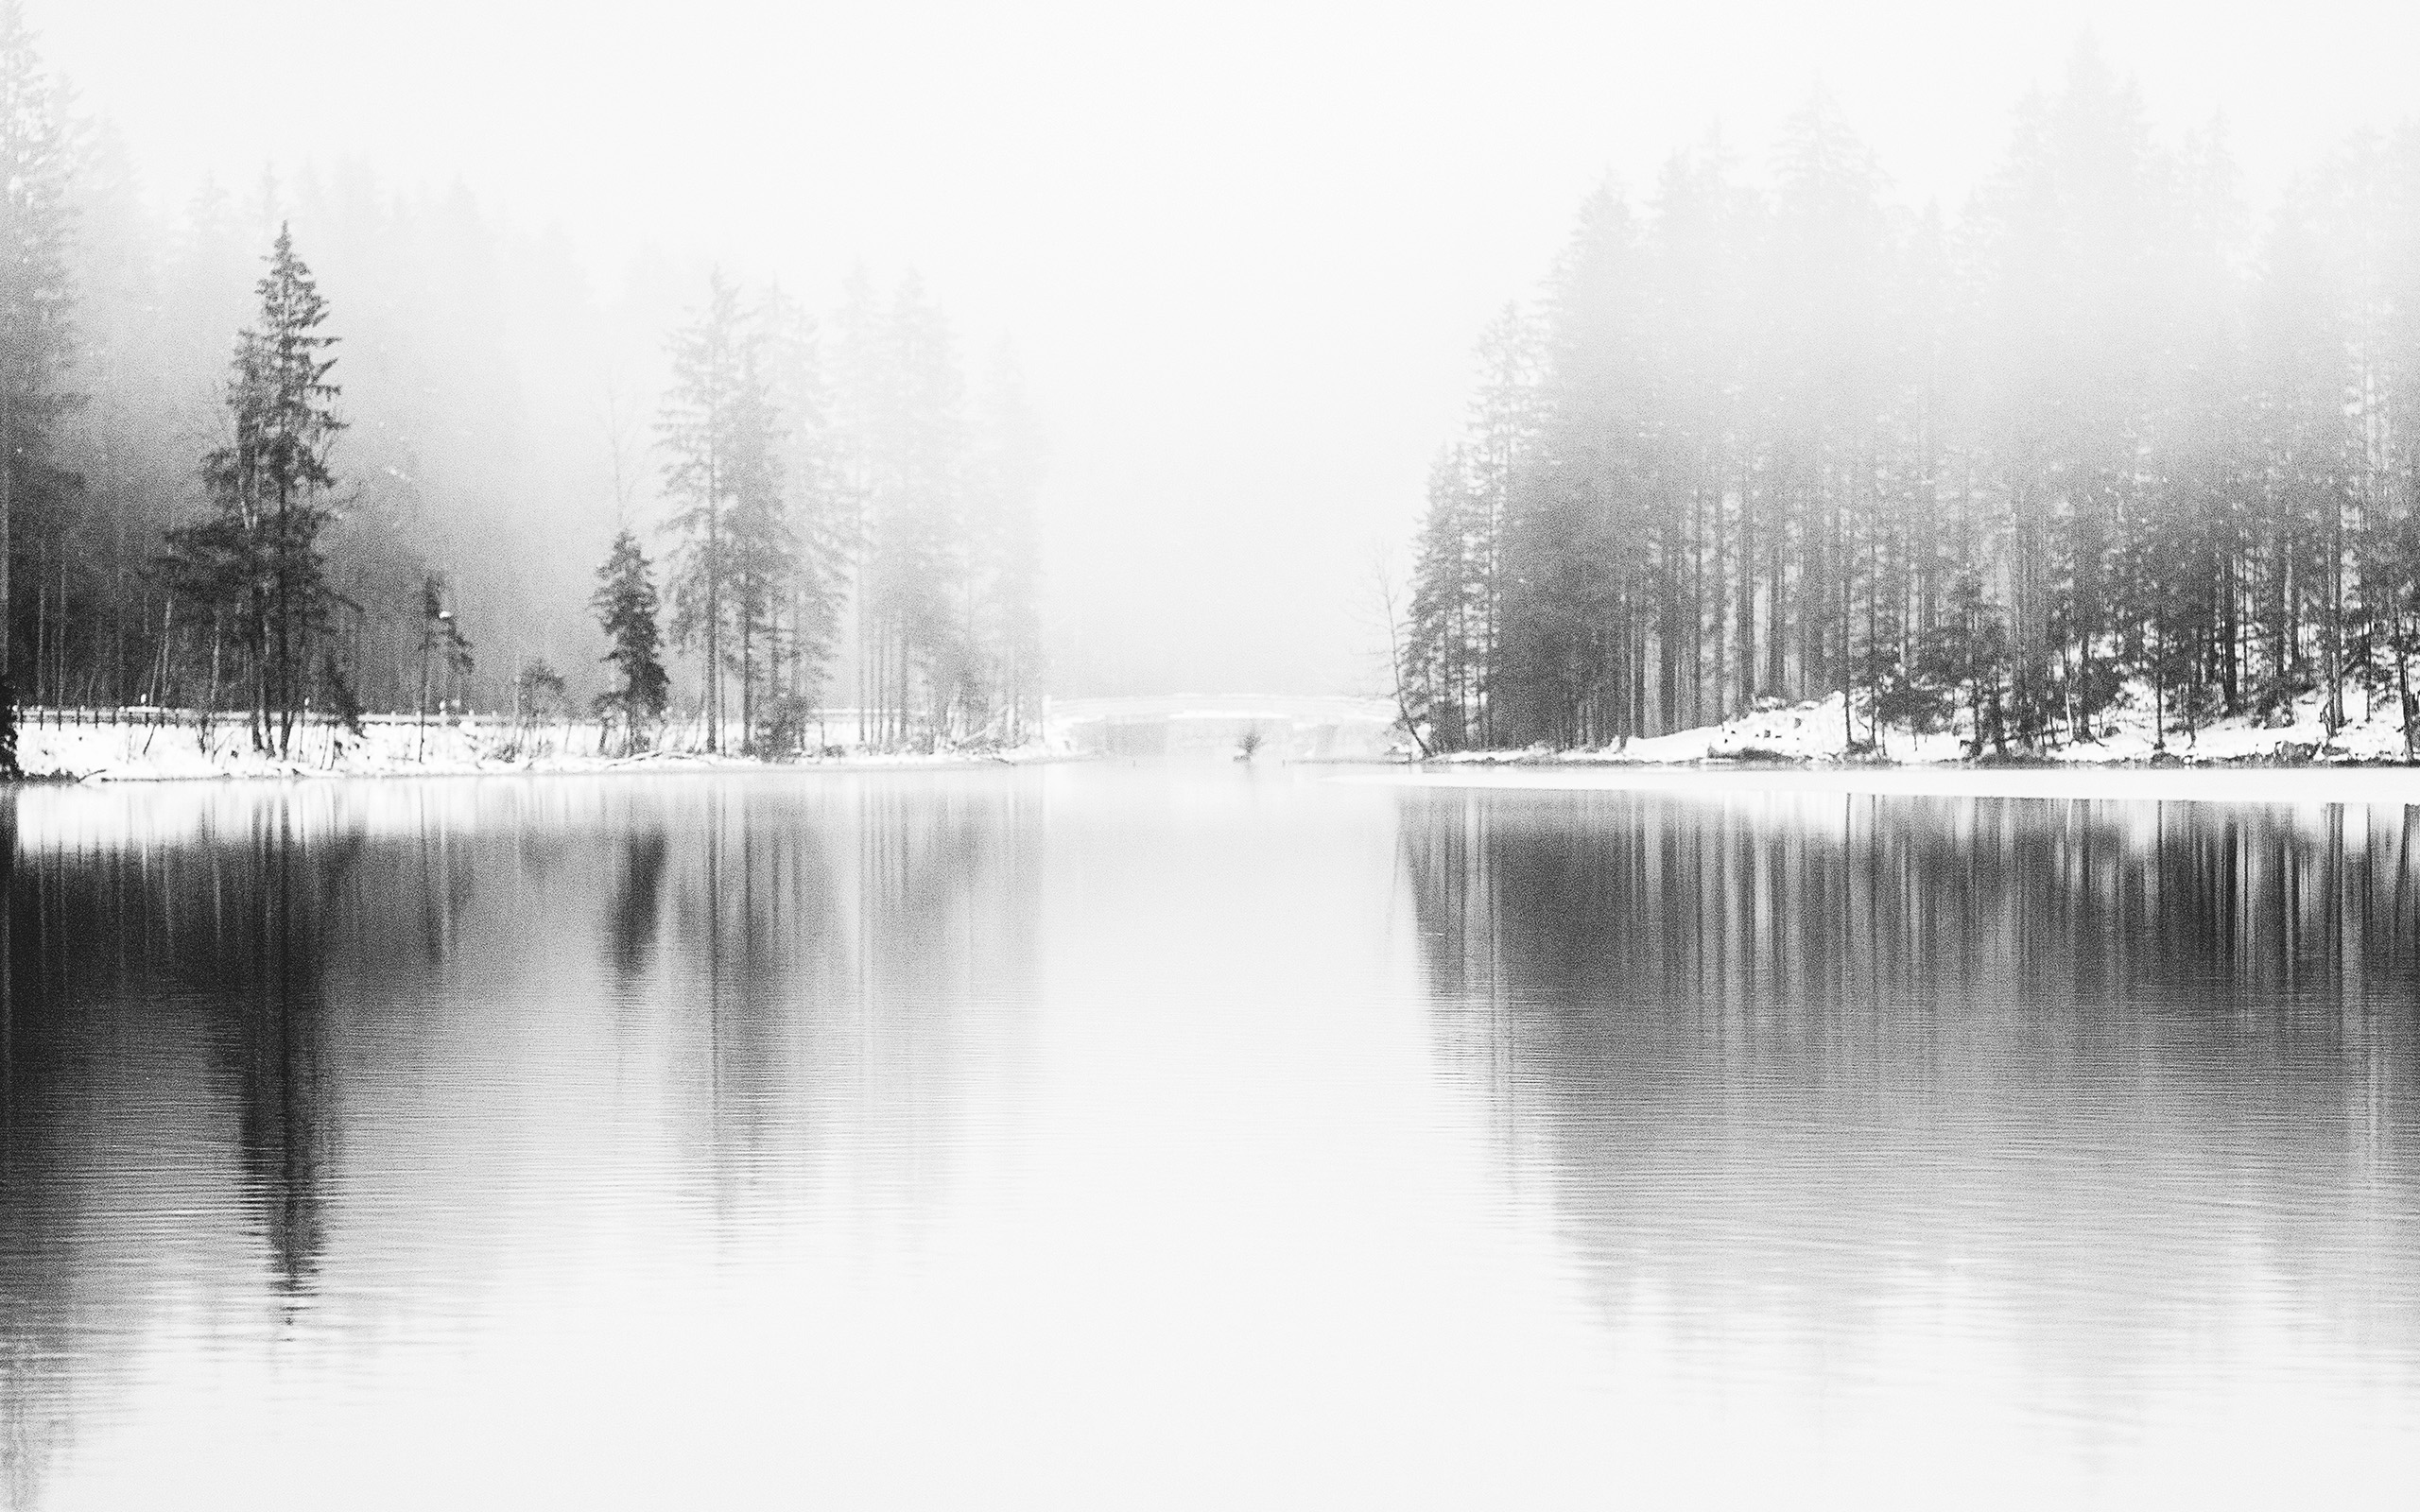 Nk08 Winter Lake White Bw Wood Nature Fog Wallpaper